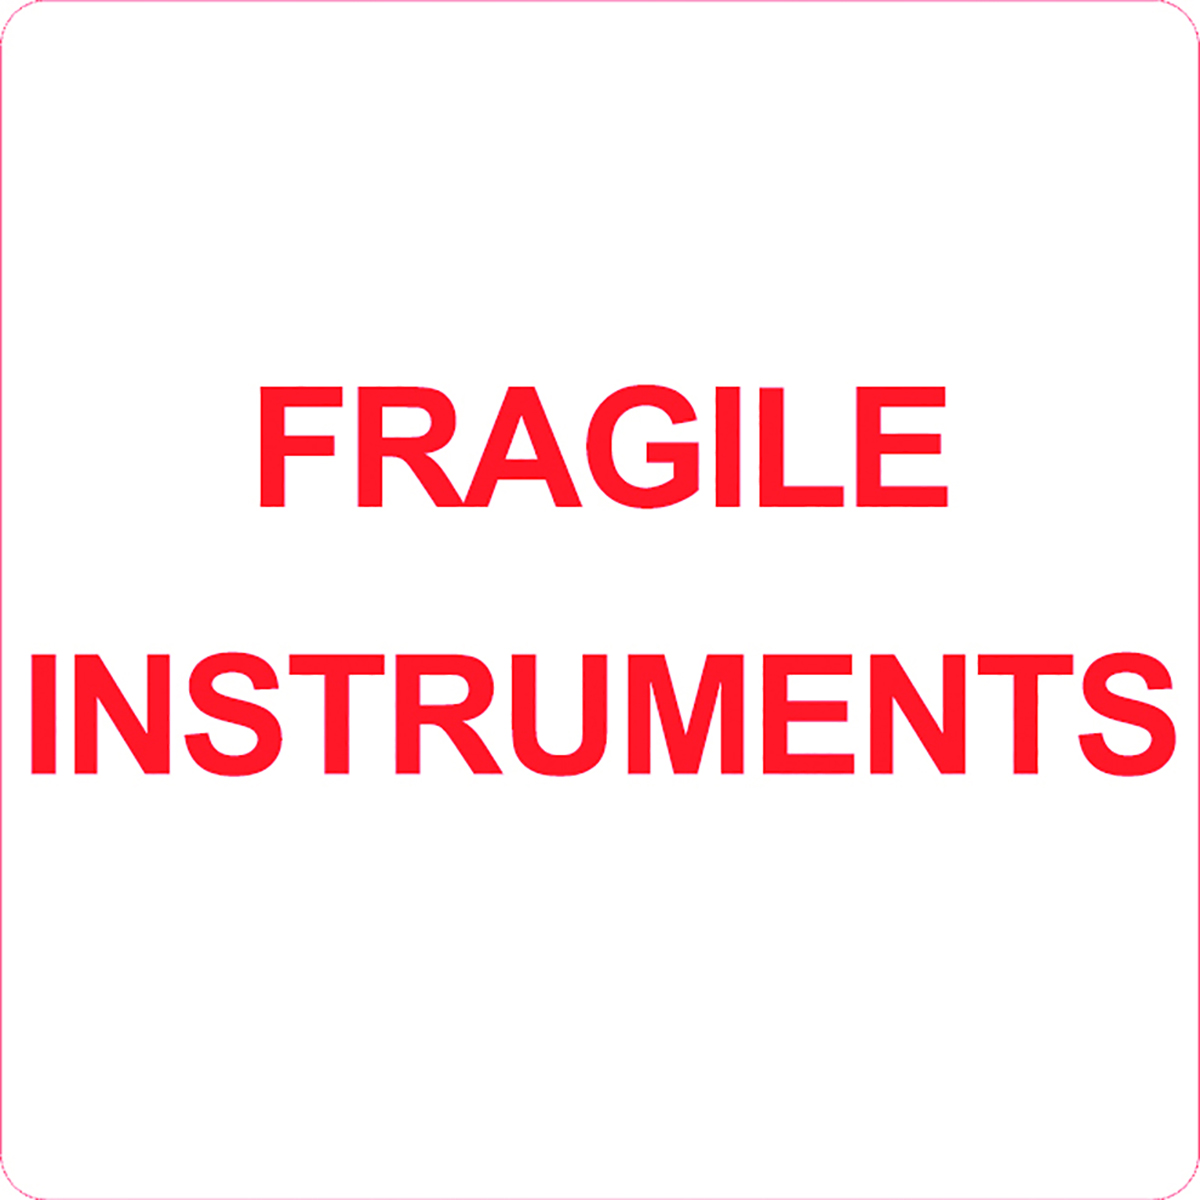 Fragile Instruments Alert Label  Image